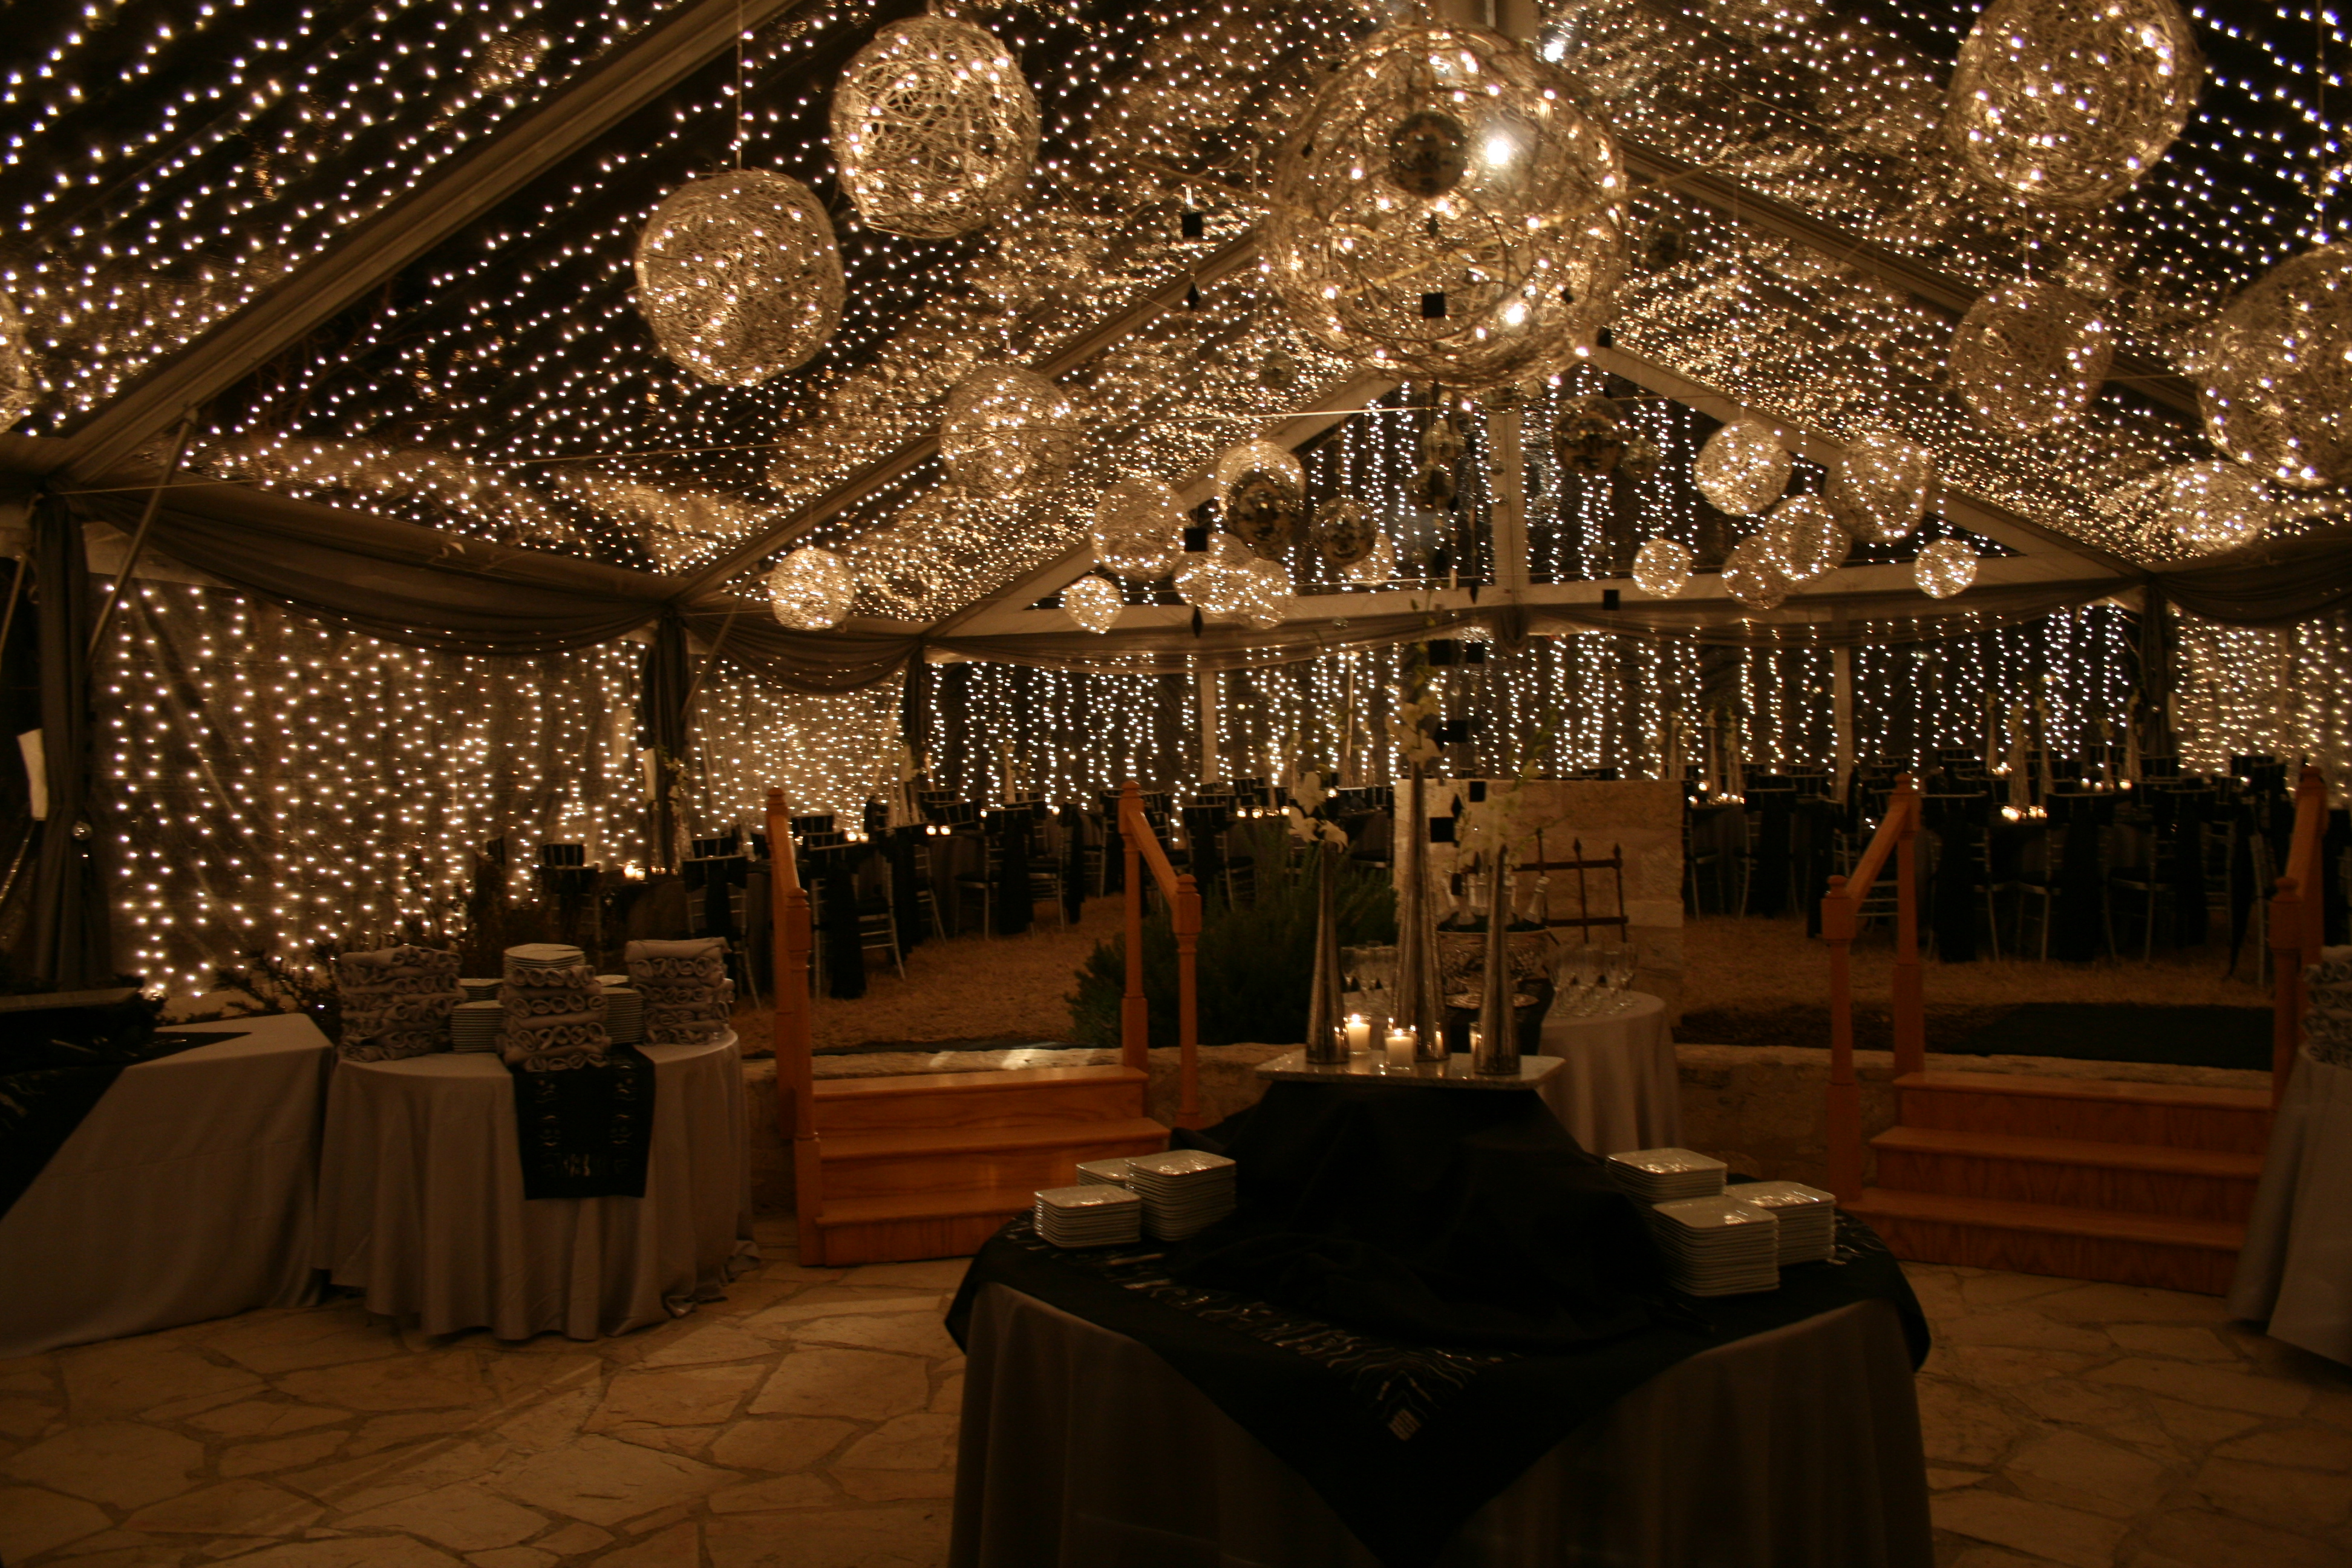 wedding crystal star drapes make co gardens draping for how tulum drape ceiling smsender hang events a to